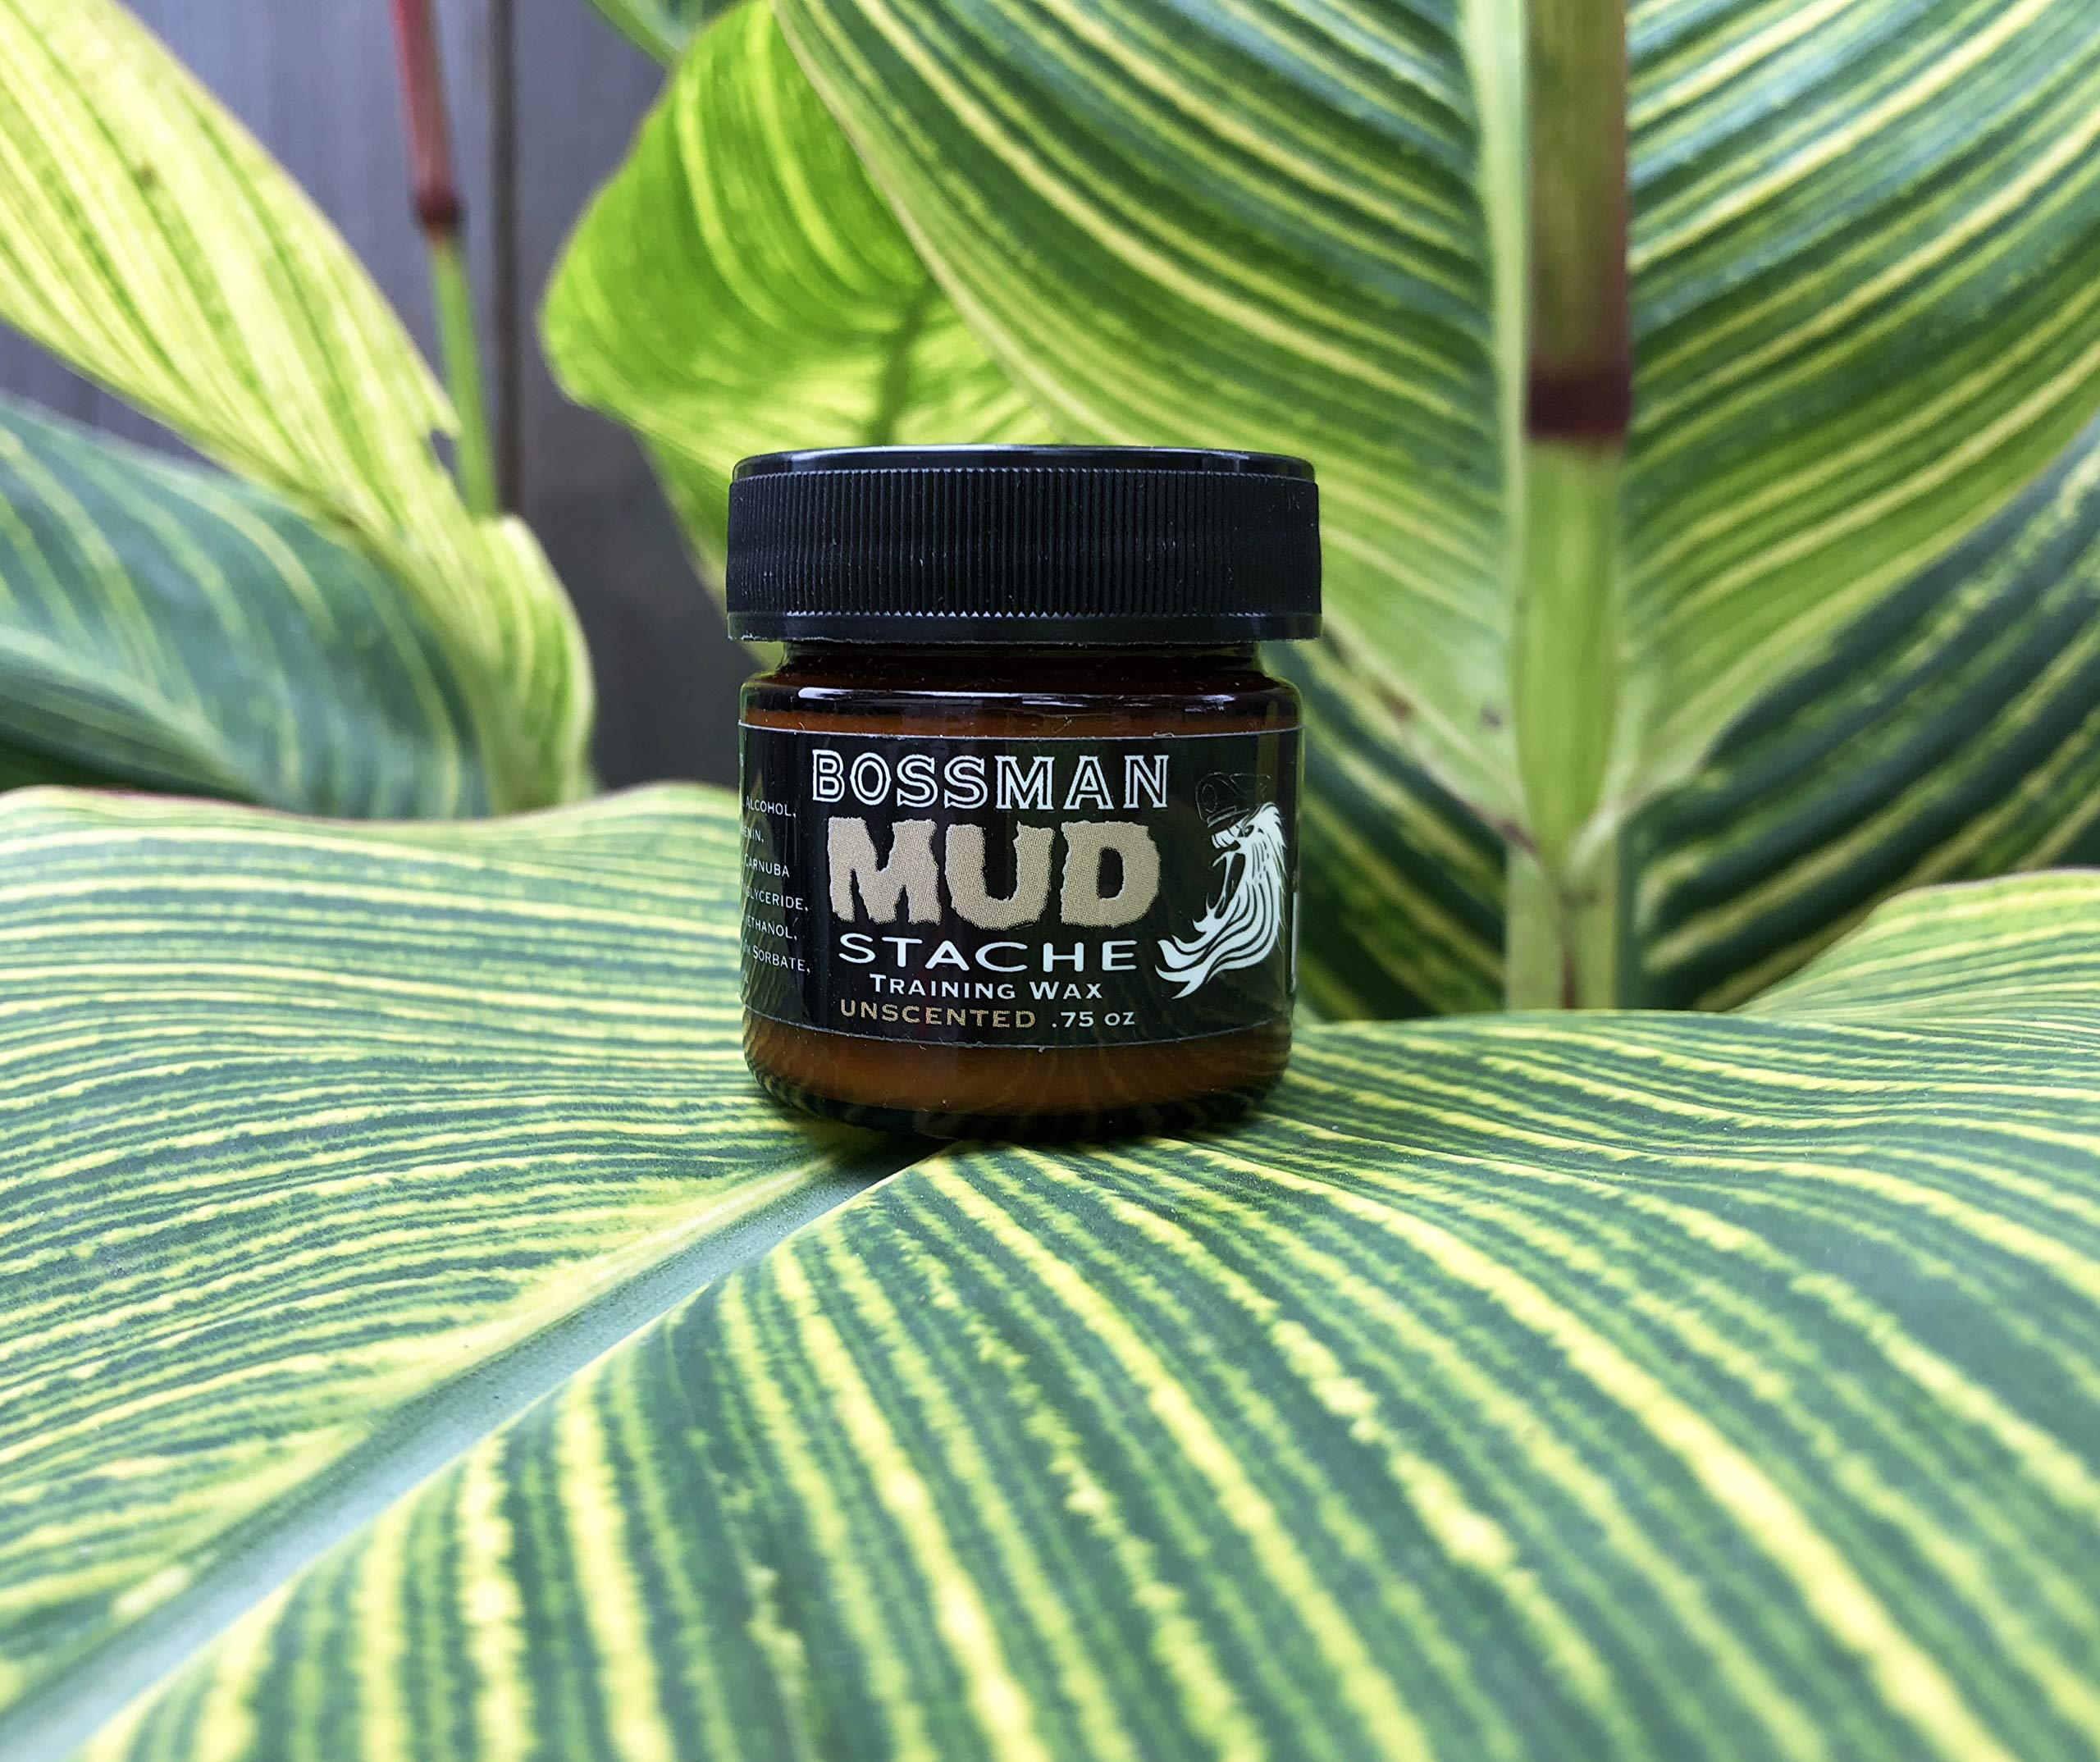 Bossman MUDstache - Mustache Training Wax, Lasts 24hrs, Unscented, No Tint. Tame, Train and Style by Bossman (Image #6)